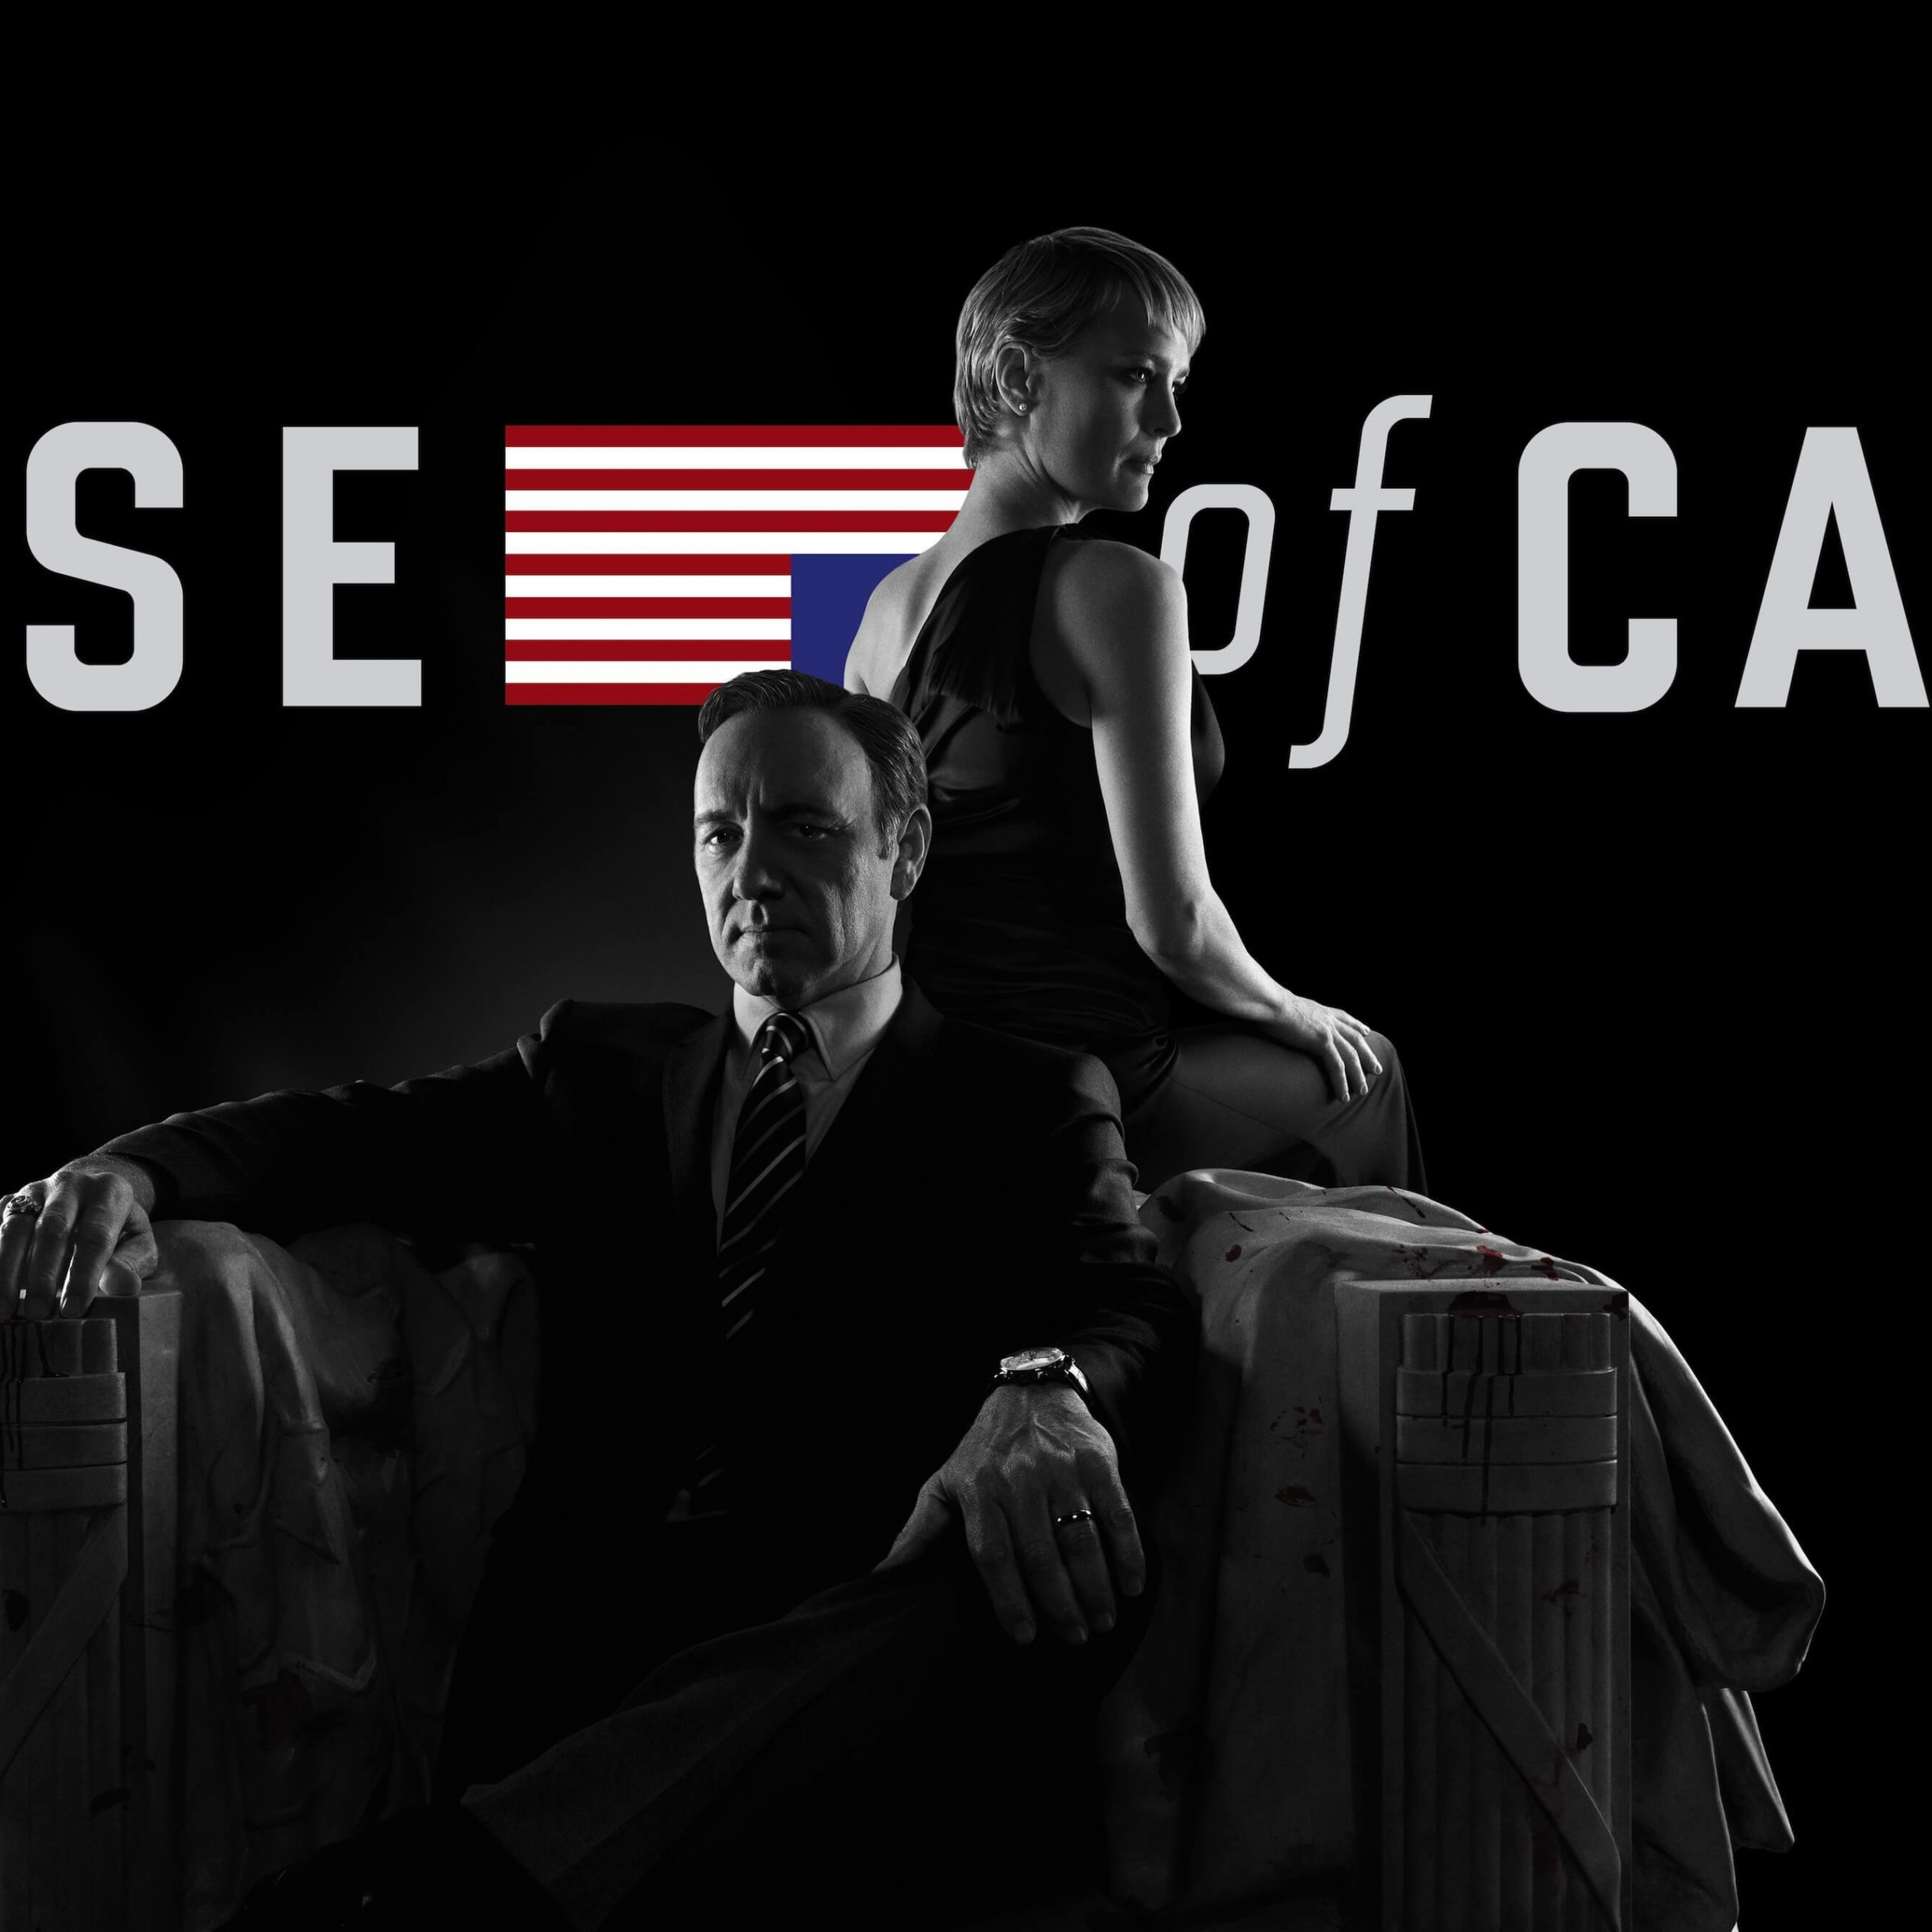 House of Cards - Black & White Wallpaper for Apple iPad Air